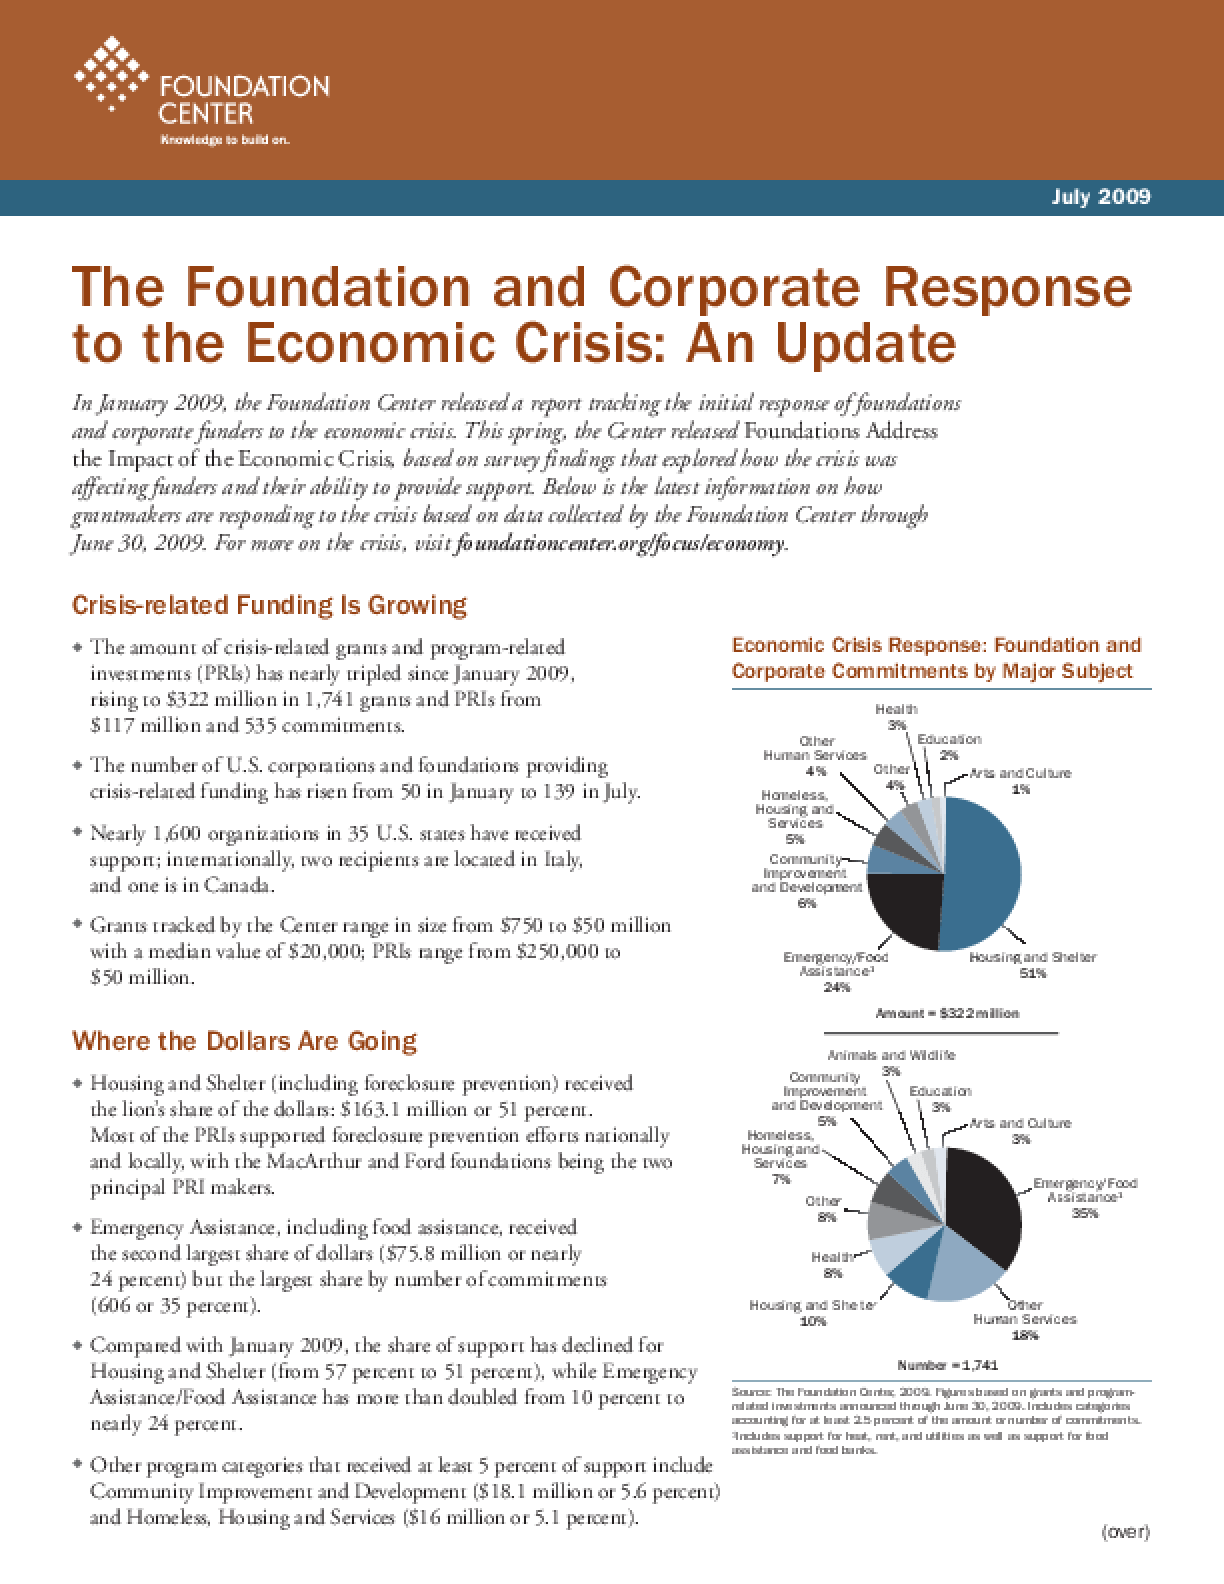 The Foundation and Corporate Response to the Economic Crisis: An Update